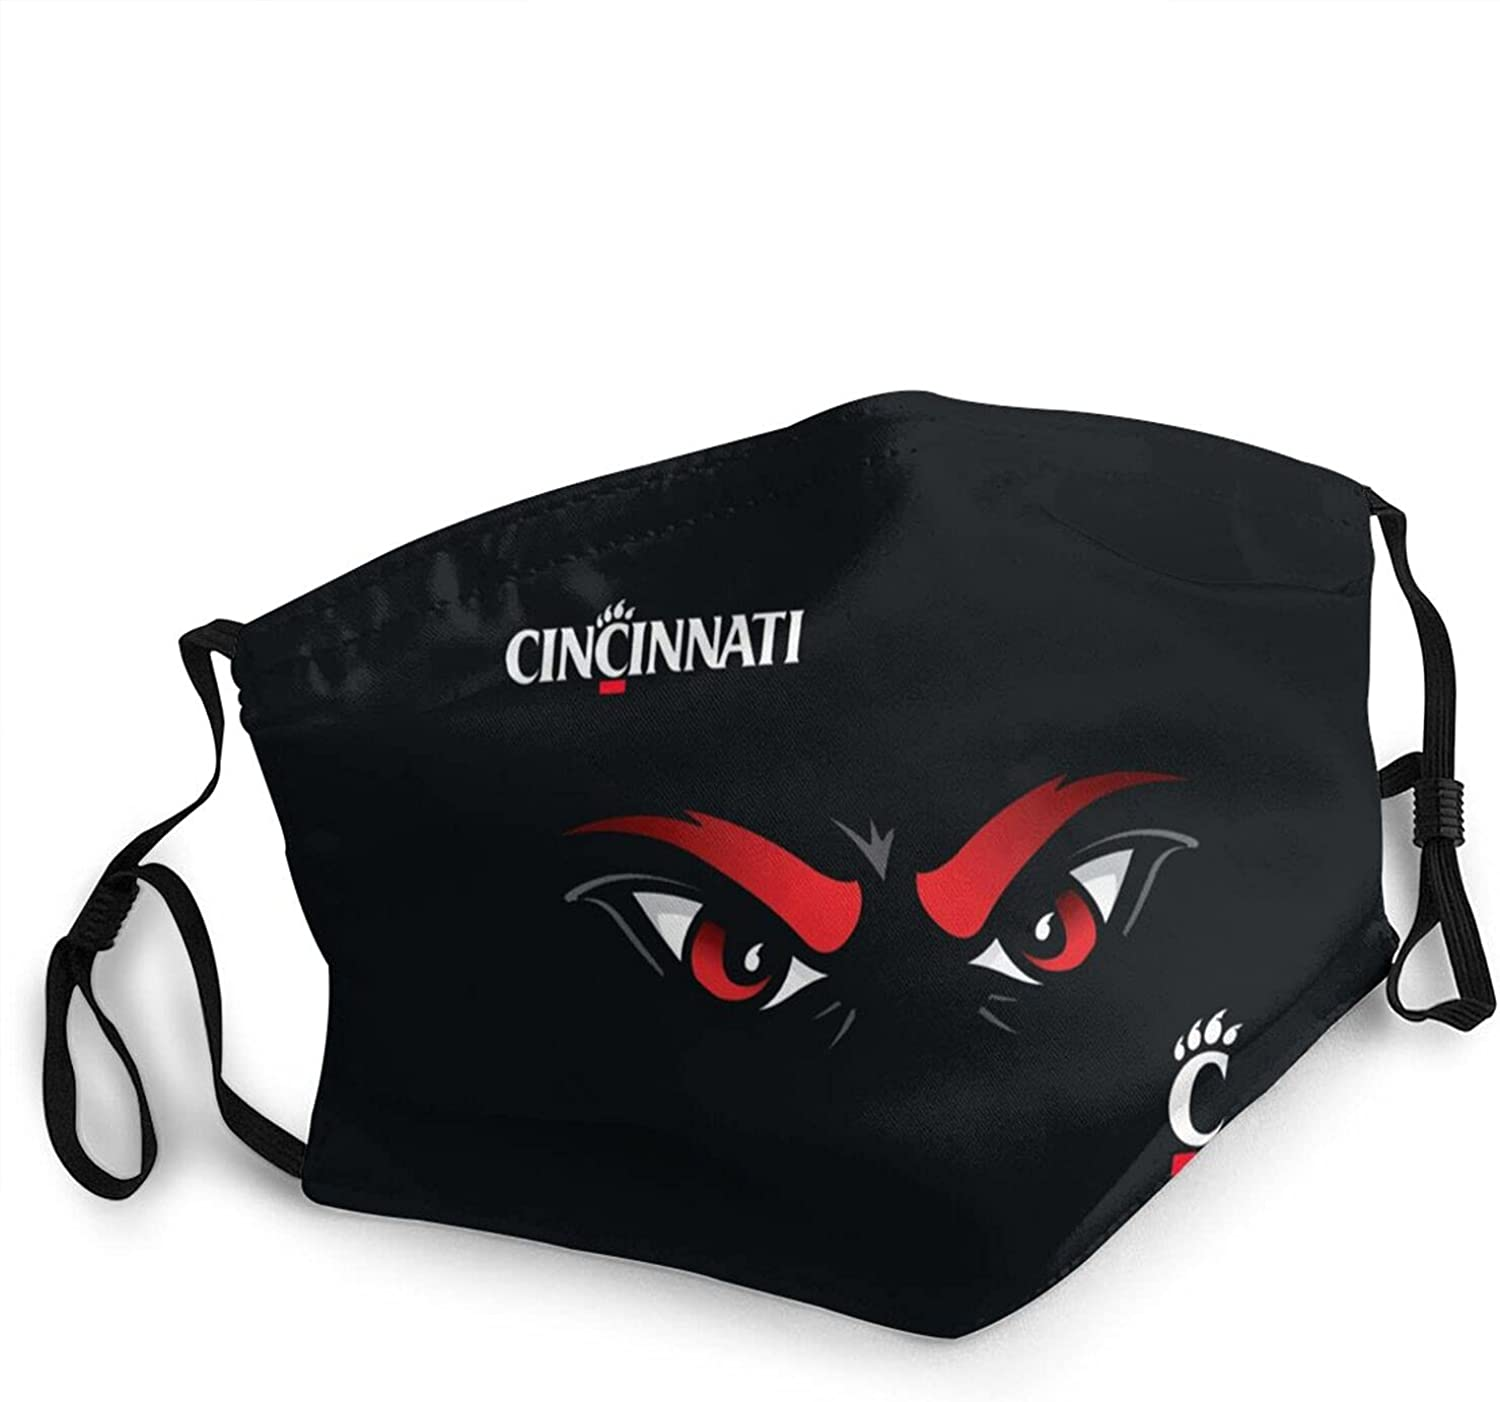 University of Cincinnati, Mask, Ripstop Protective Face Shield, Adjustable Mouth Cover for Men Women